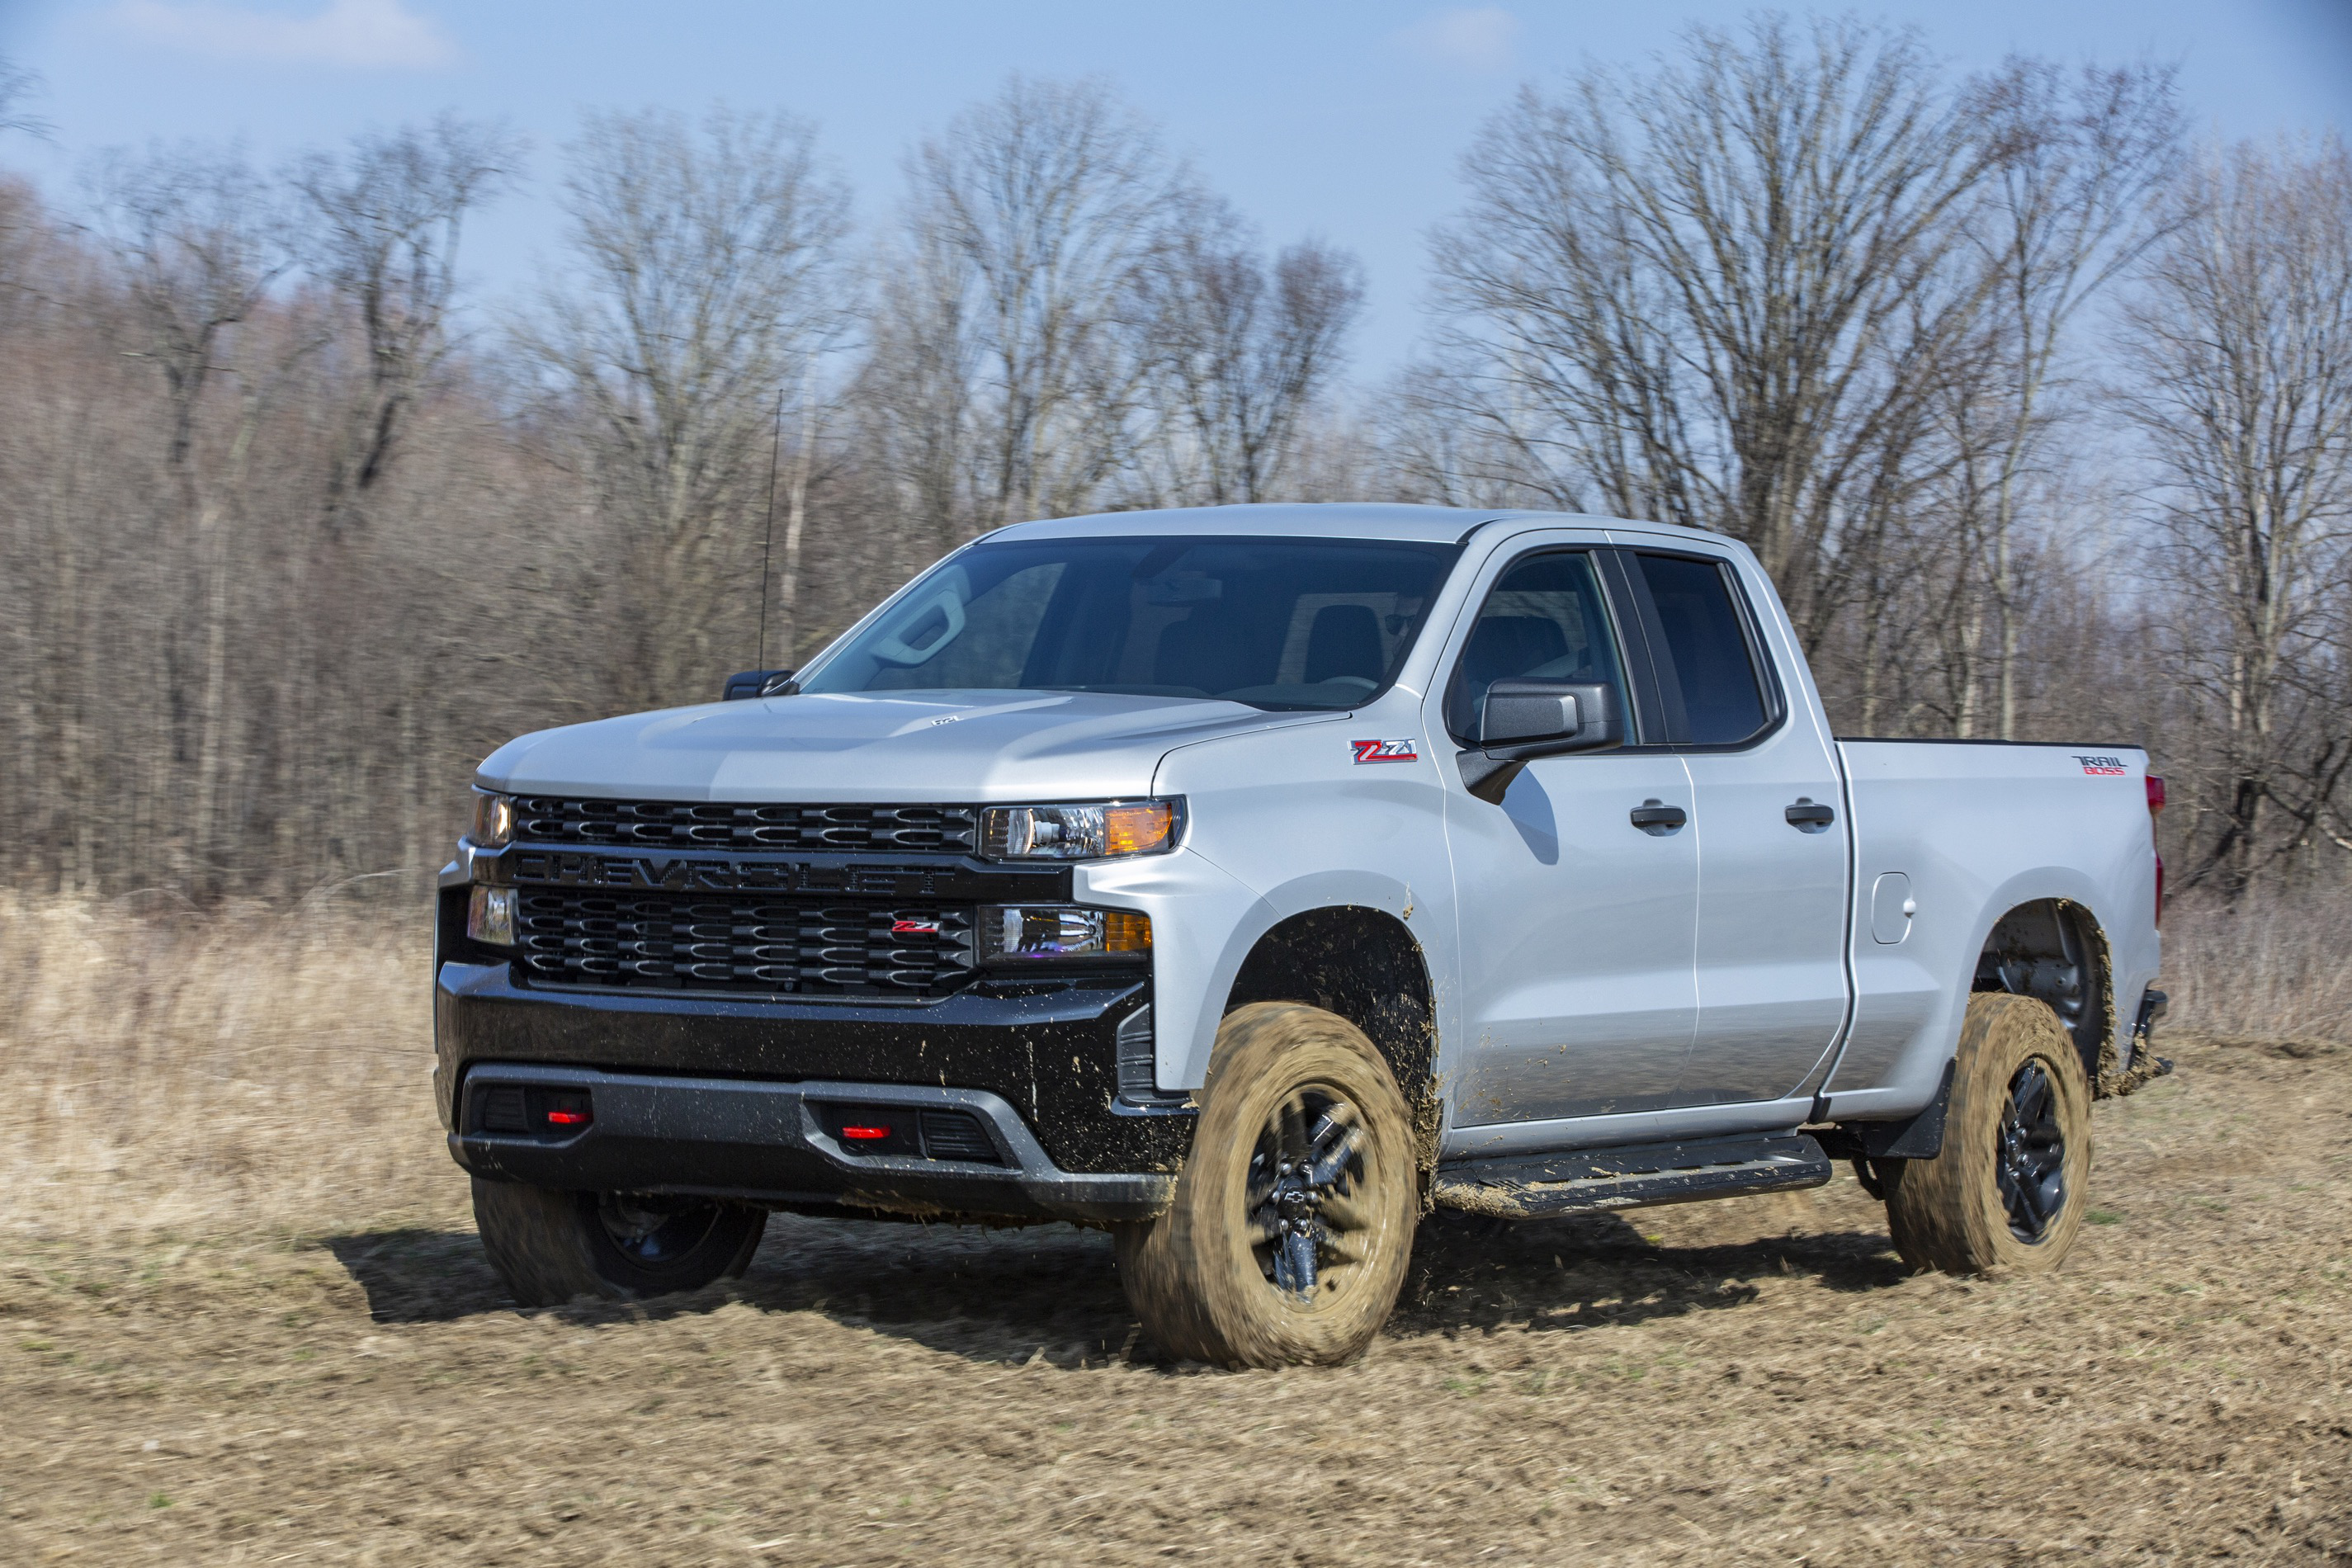 2020 Chevrolet Silverado Custom Trail Boss front and side view